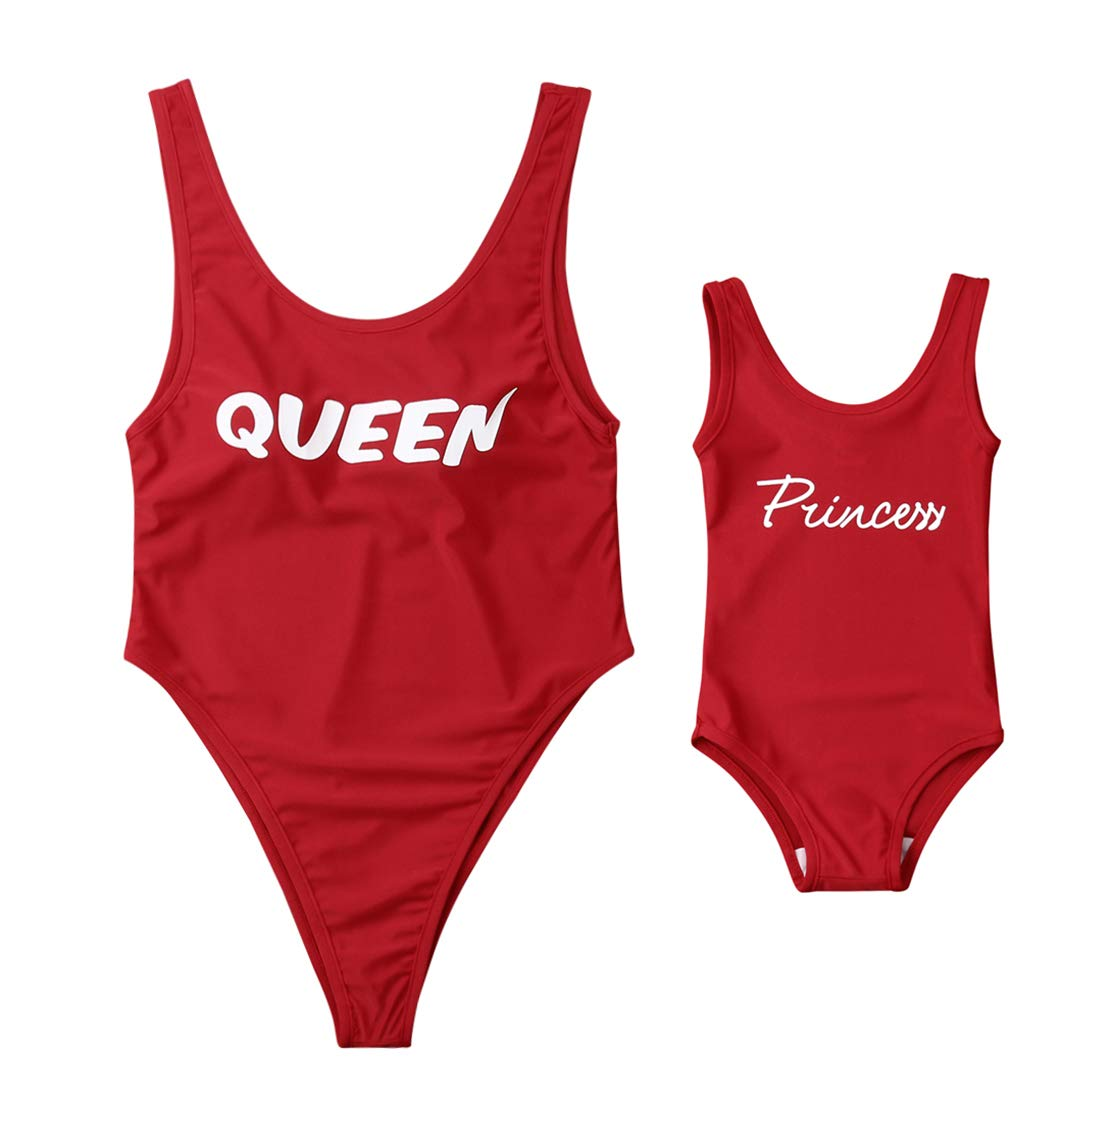 Mommy&Me Queen Princess Letter Print Swimsuit Family Matching One Piece Sleeveless Monokini Bathing Suit (Girl, Girl/ 1-2T)